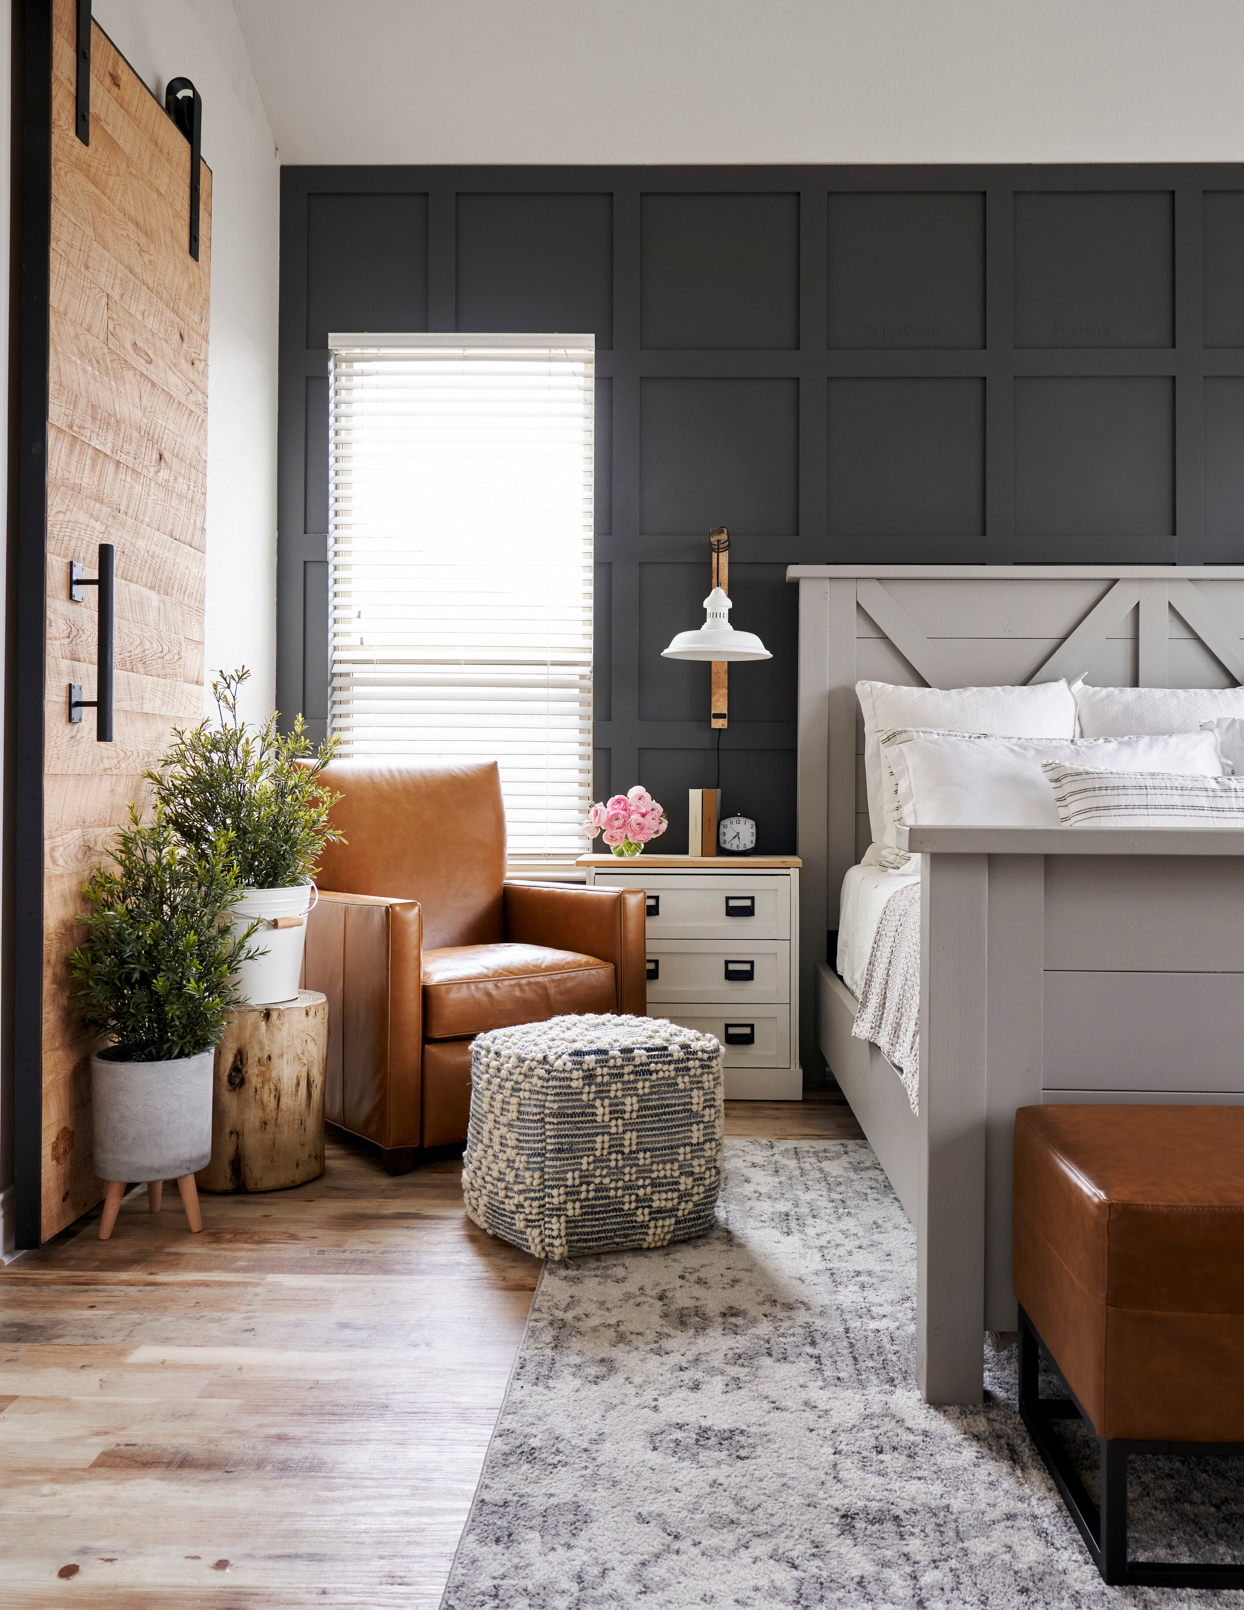 bedroom with wooden floors and black walls